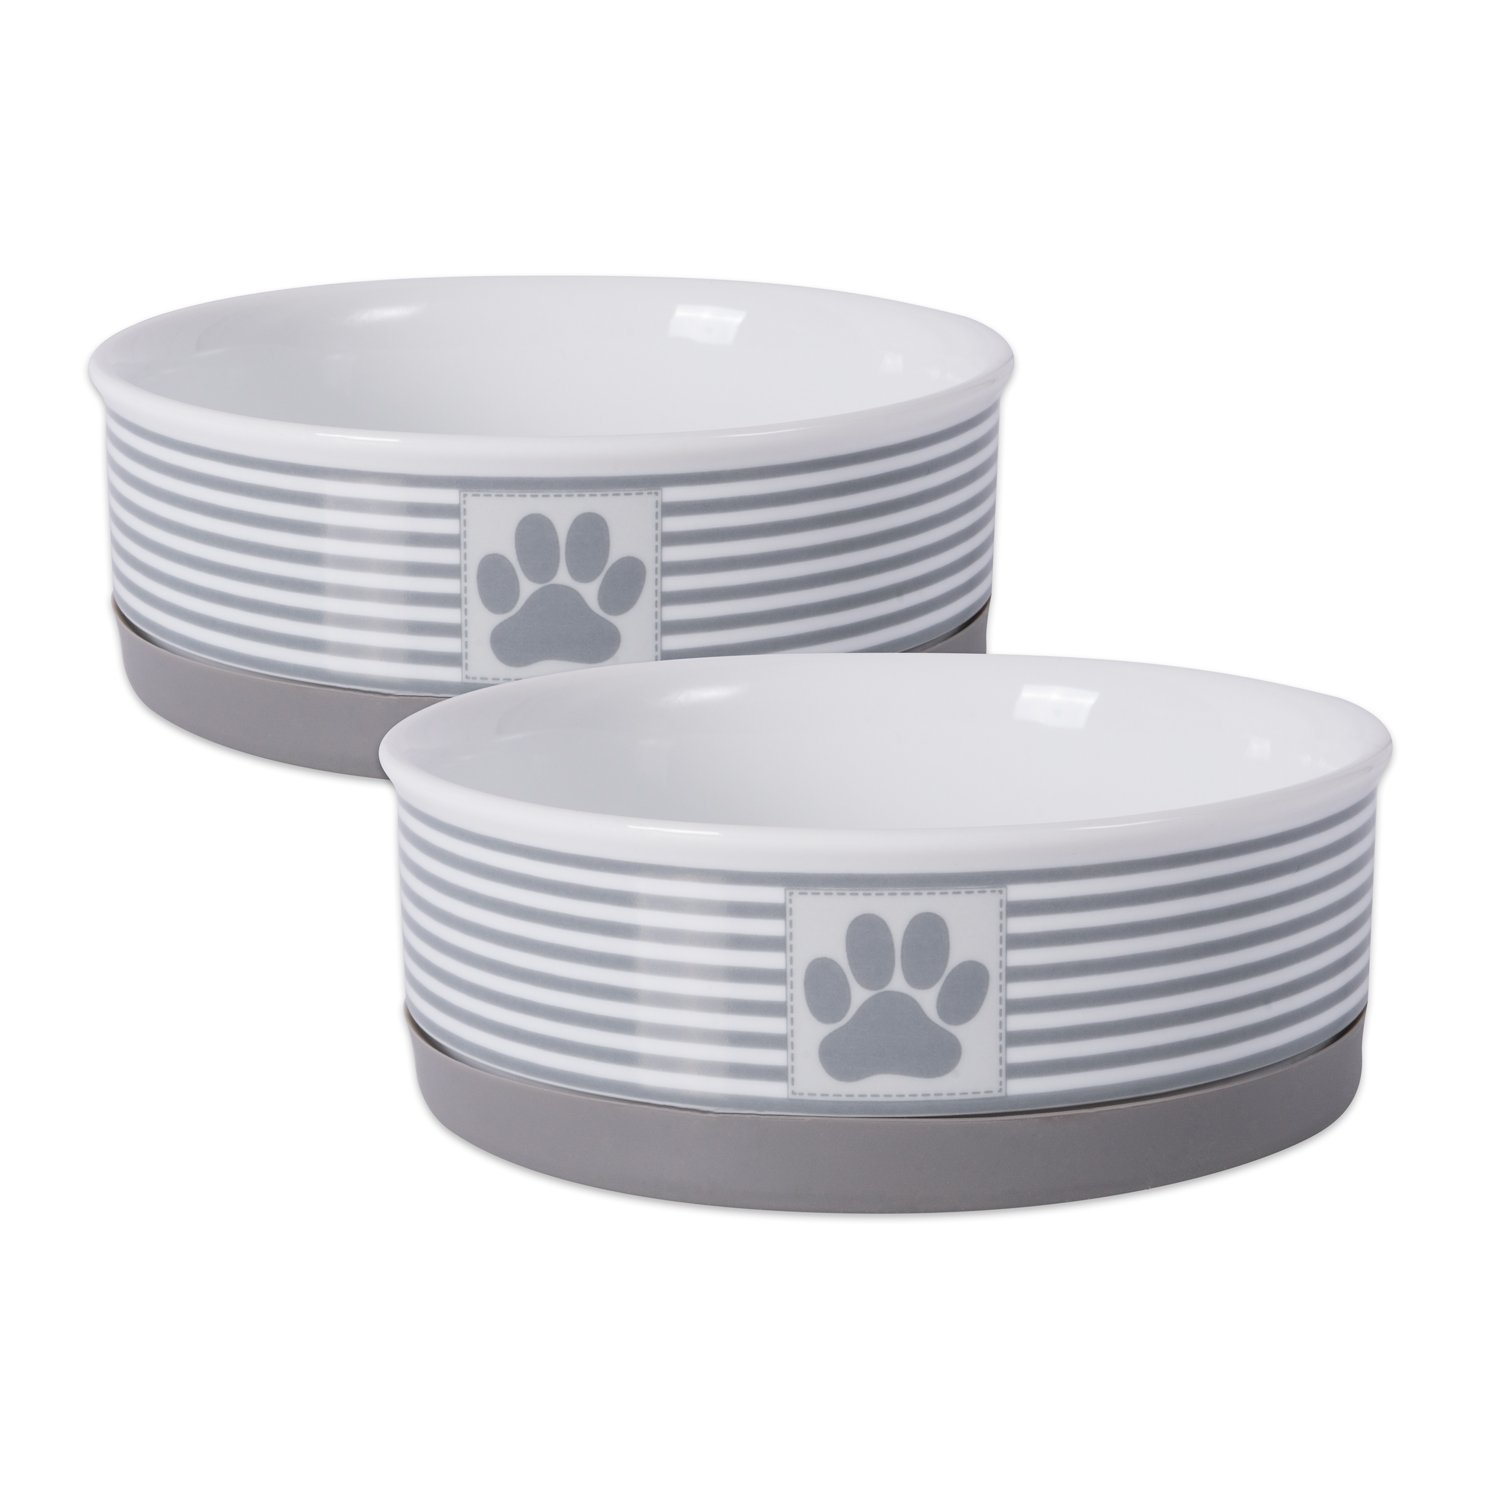 DII Bone Dry Paw Patch & Stripes Ceramic Pet Bowl for Food & Water with Non-Skid Silicone Rim for Dogs and Cats (Medium - 6'' Dia x 2''H) Gray - Set of 2